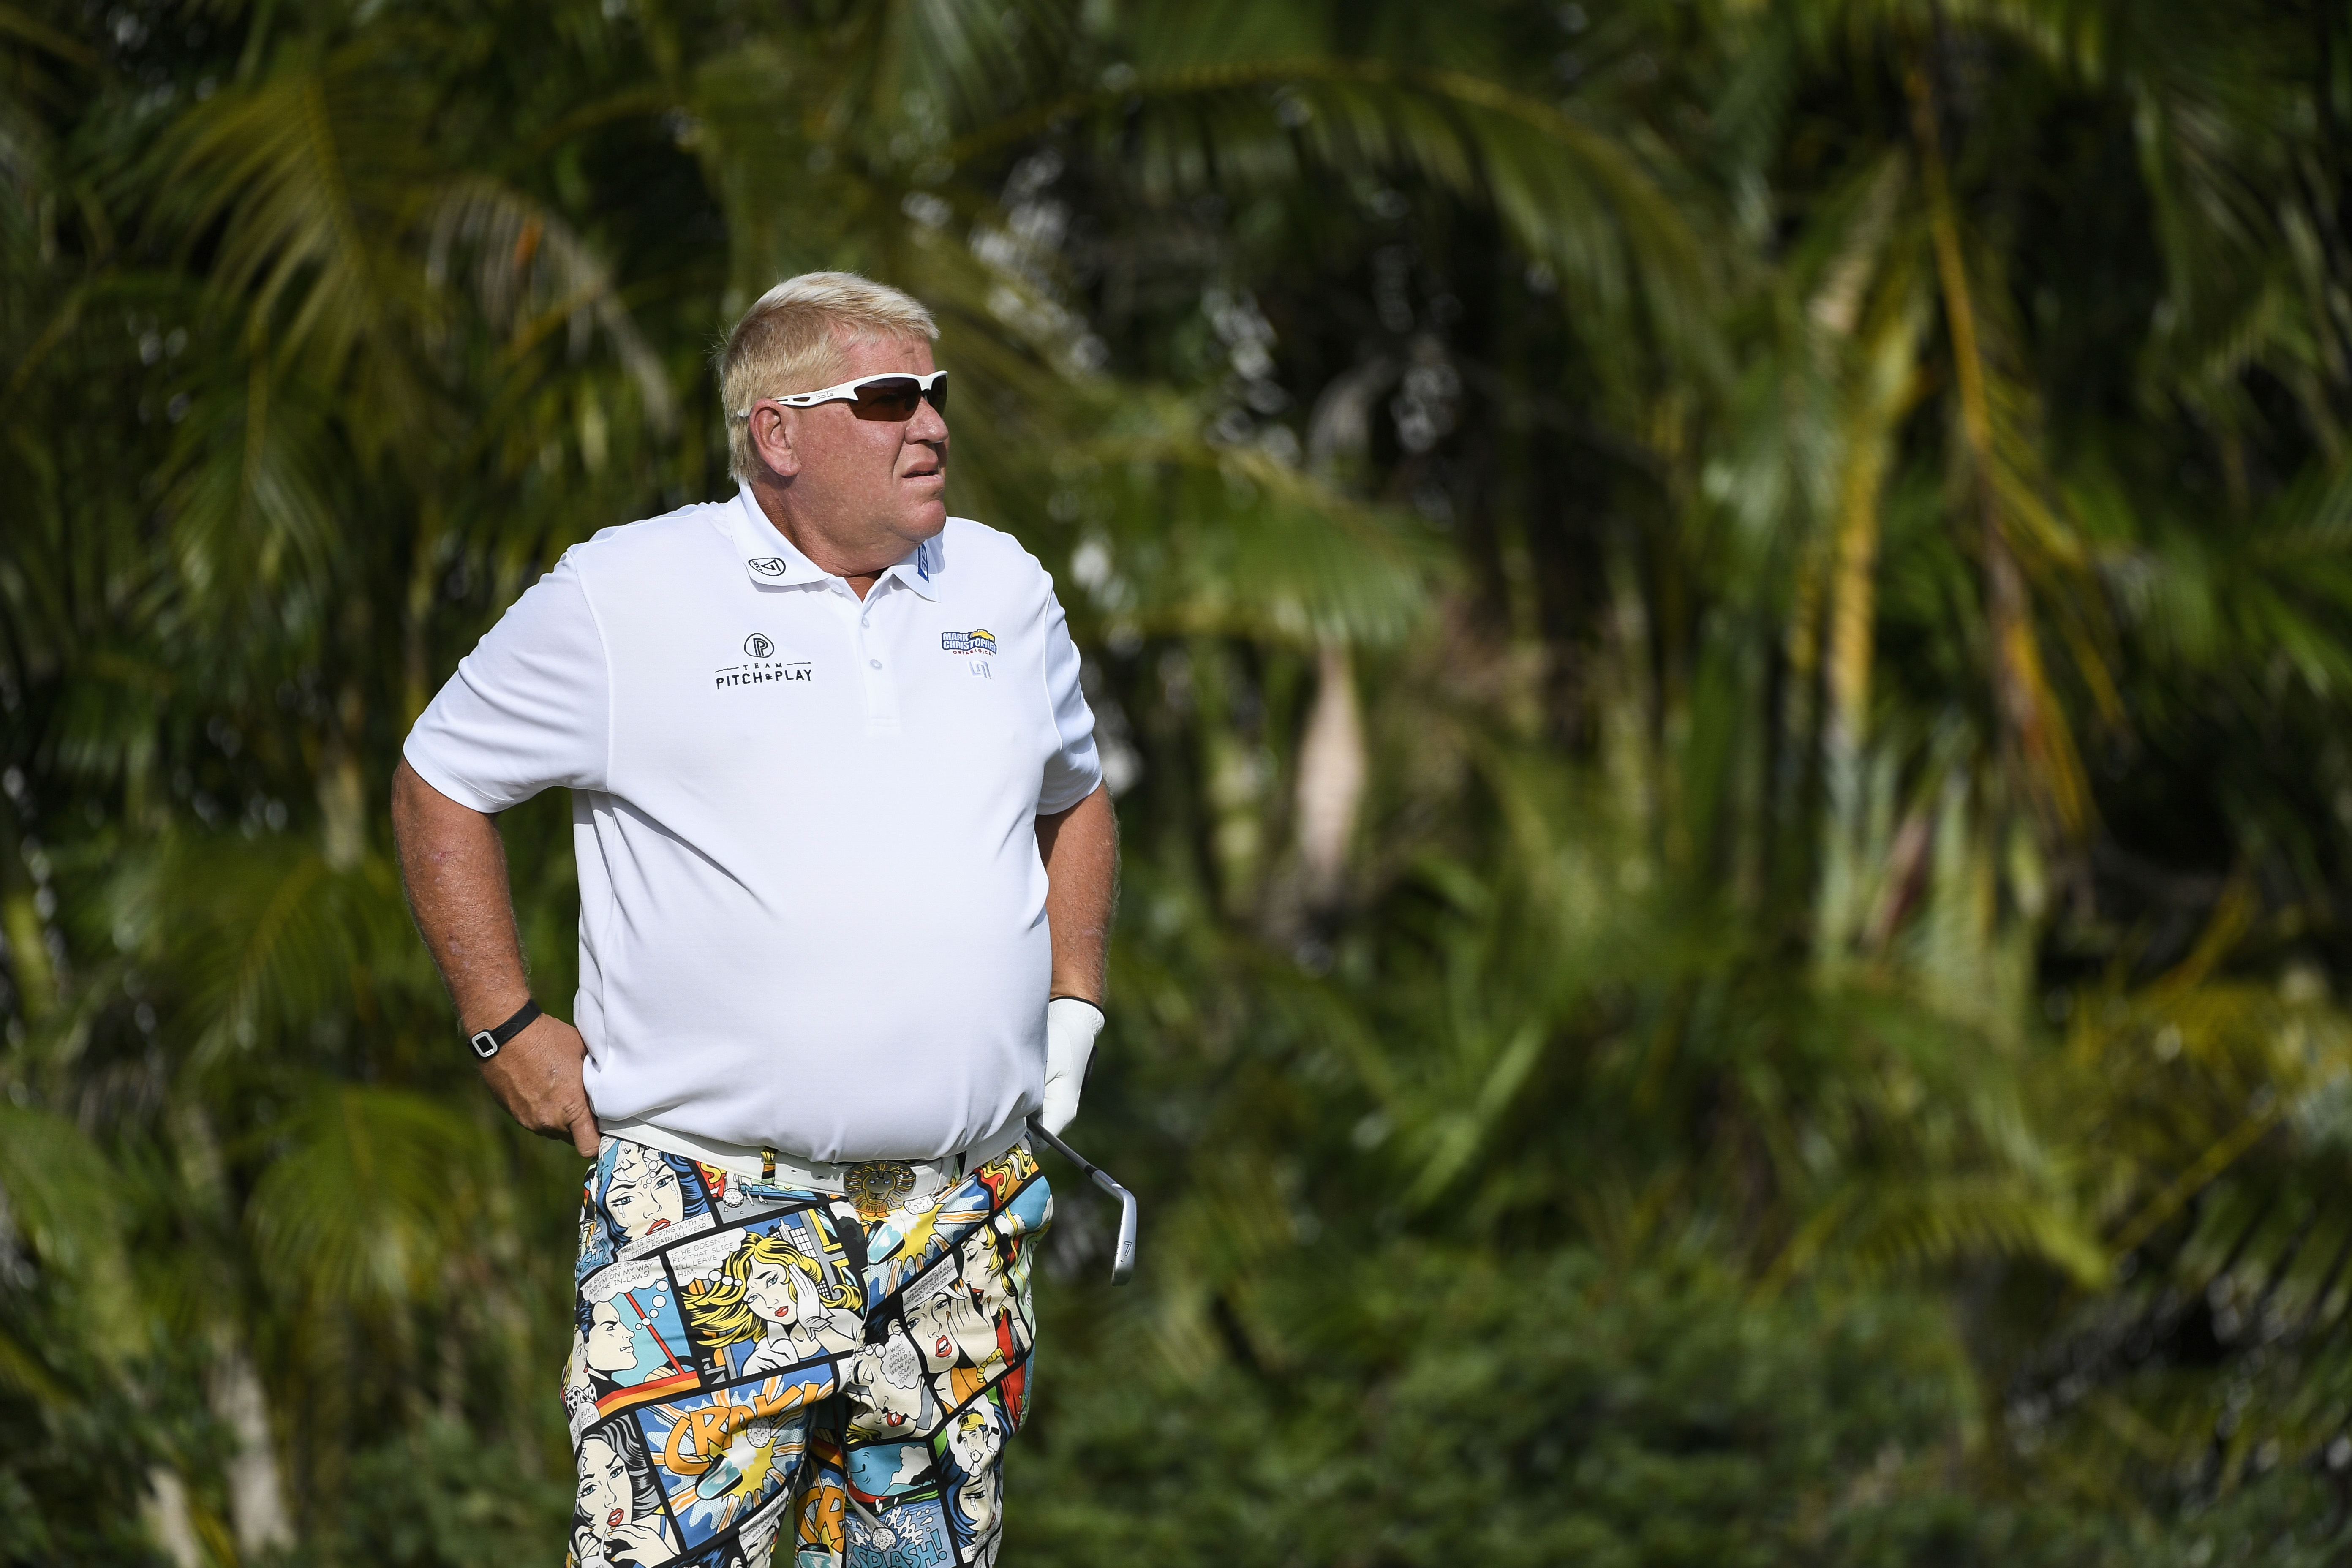 John Daly tees off on the third hole during the final round of the PGA TOUR Champions Allianz Championship at The Old Course at Broken Sound.